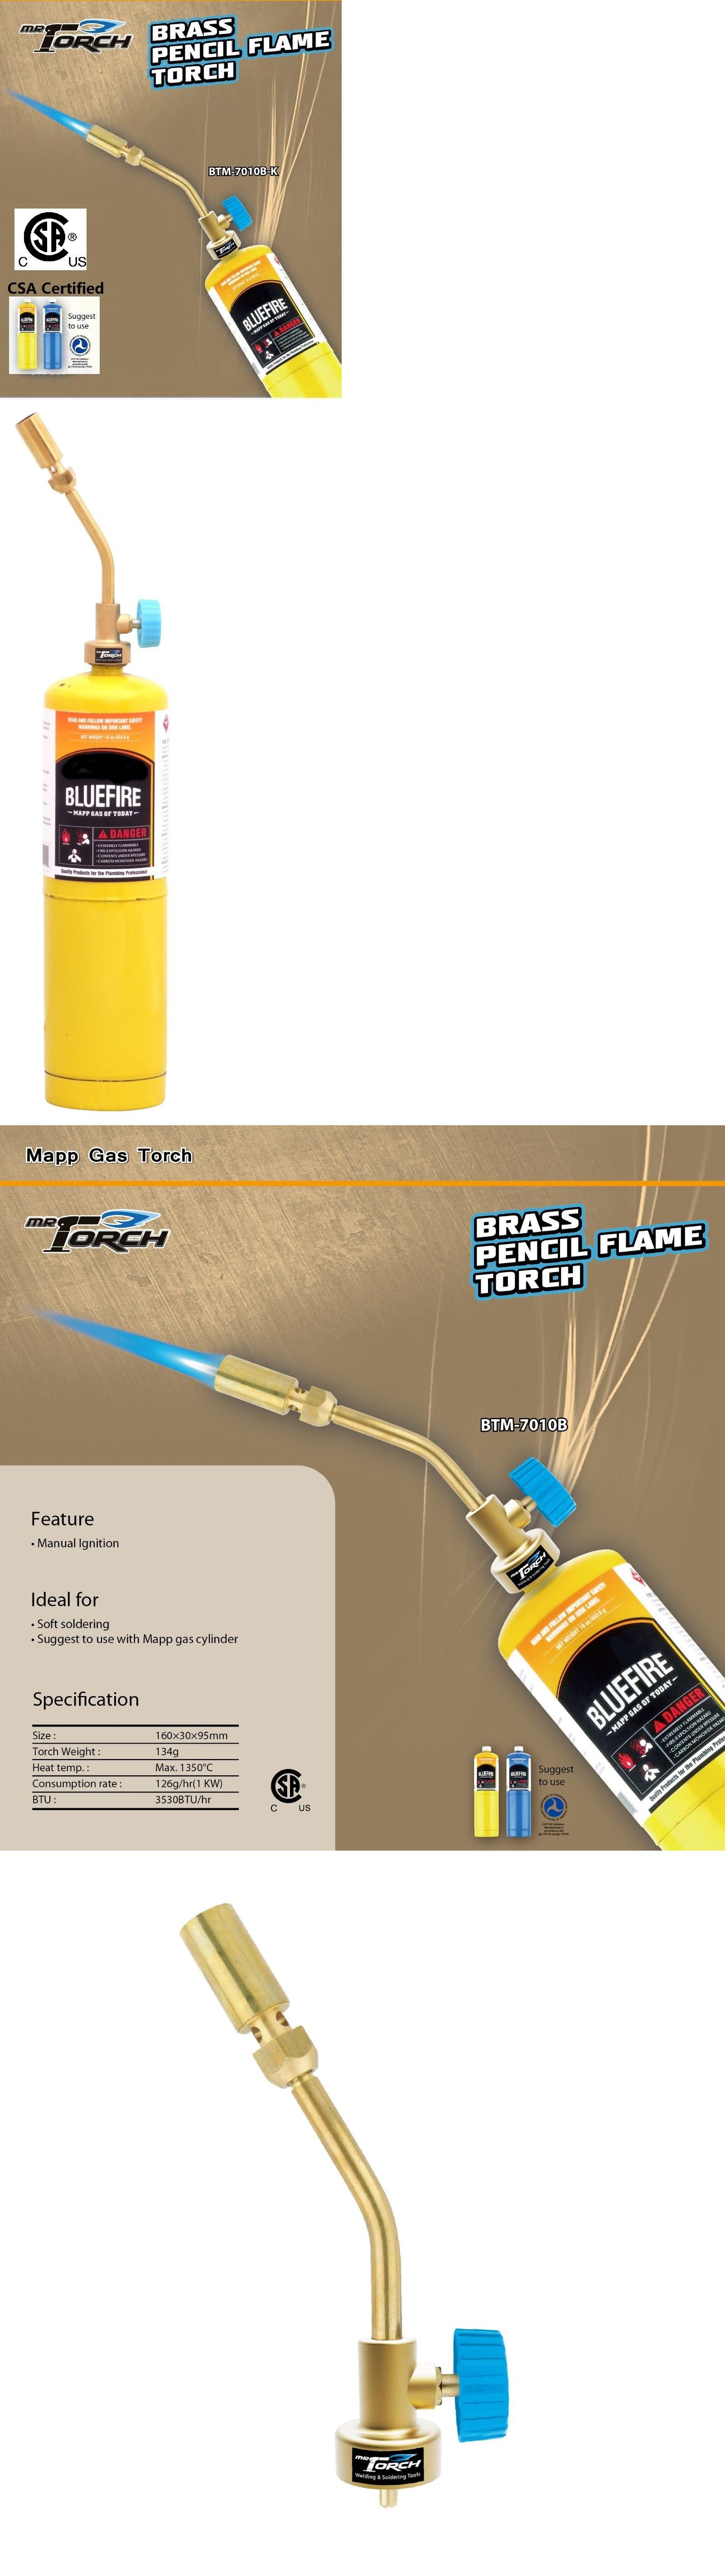 Welding And Soldering Tools 46413 Mr Torch Brass Pencil Flame Gas Welding Torch Csa Certified Mapp Map Pro Propane Buy It Welding Torch Mapp Gas Torch Map